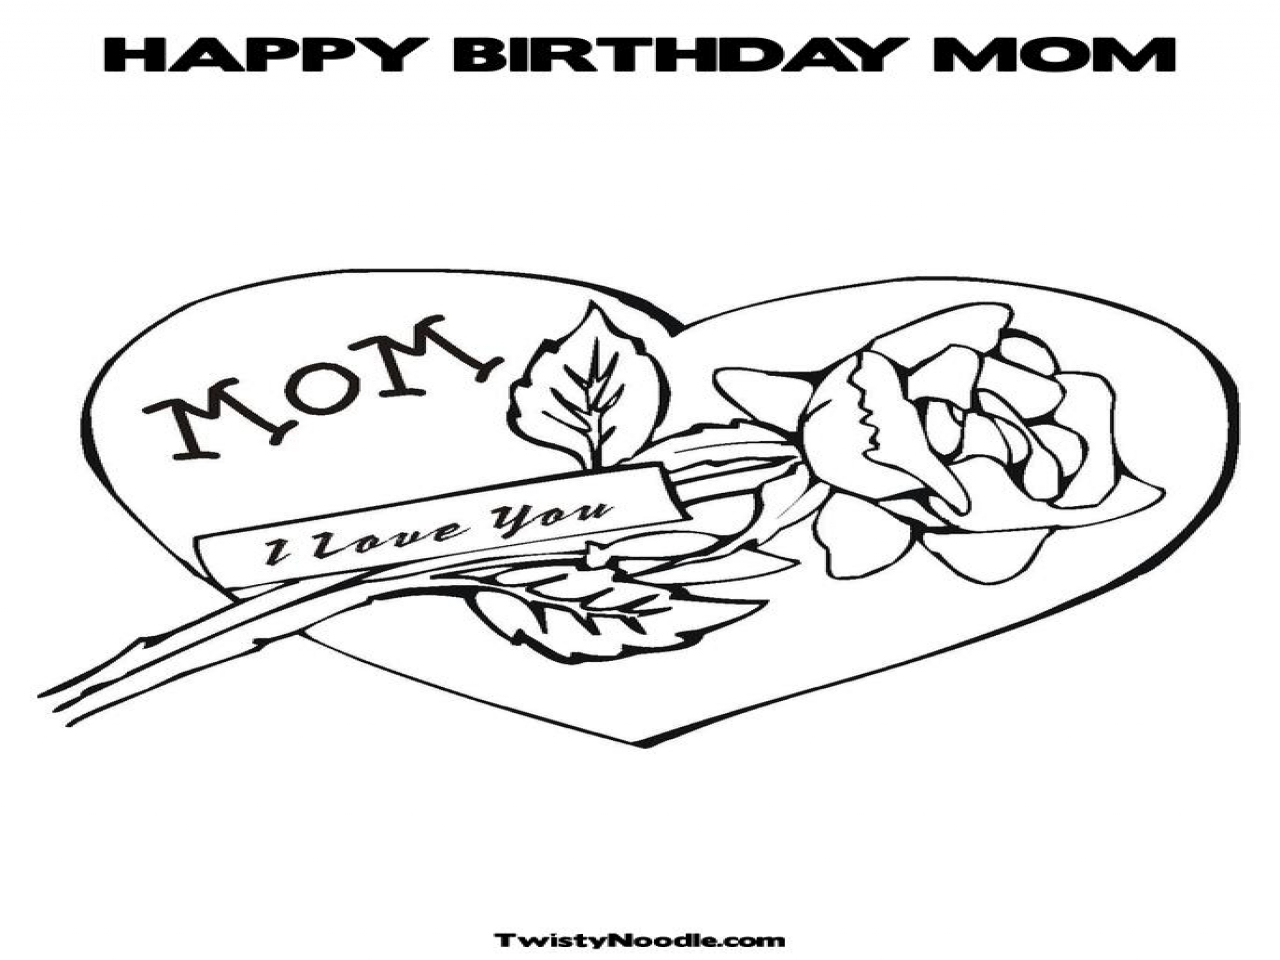 1 Mom Coloring Pages Happy Birthday Grig3 to Print Of Free Printable Happy Birthday Mom Cards Birthday Coloring Pages for Printable